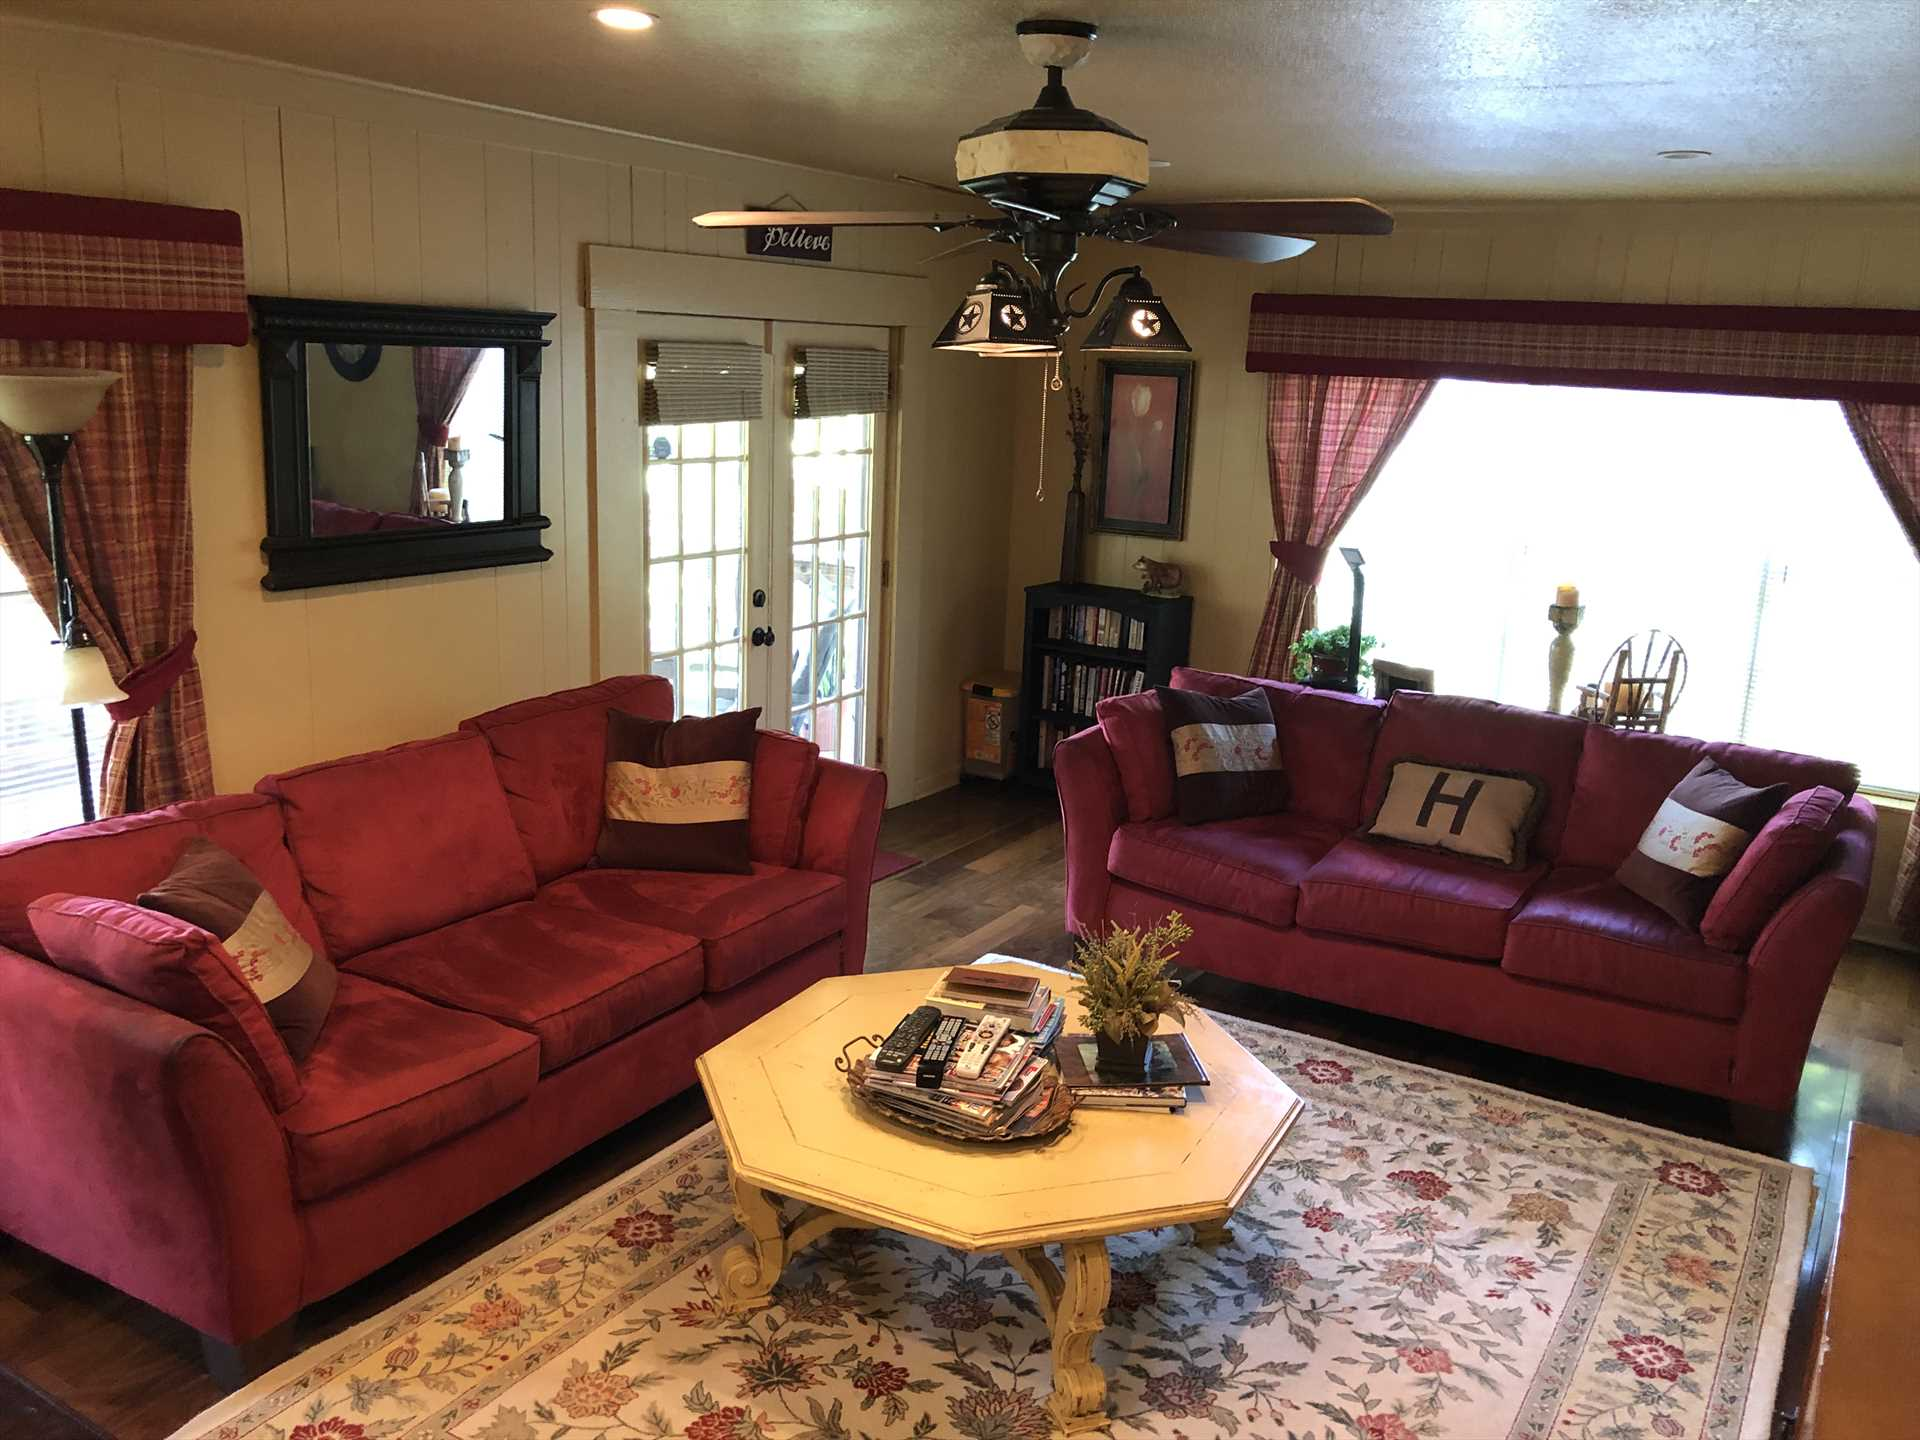 Central air and heating, along with ceiling fans, assure every moment is comfortable here. The living area features a fireplace and cable TV, and there's wireless Internet service everywhere!